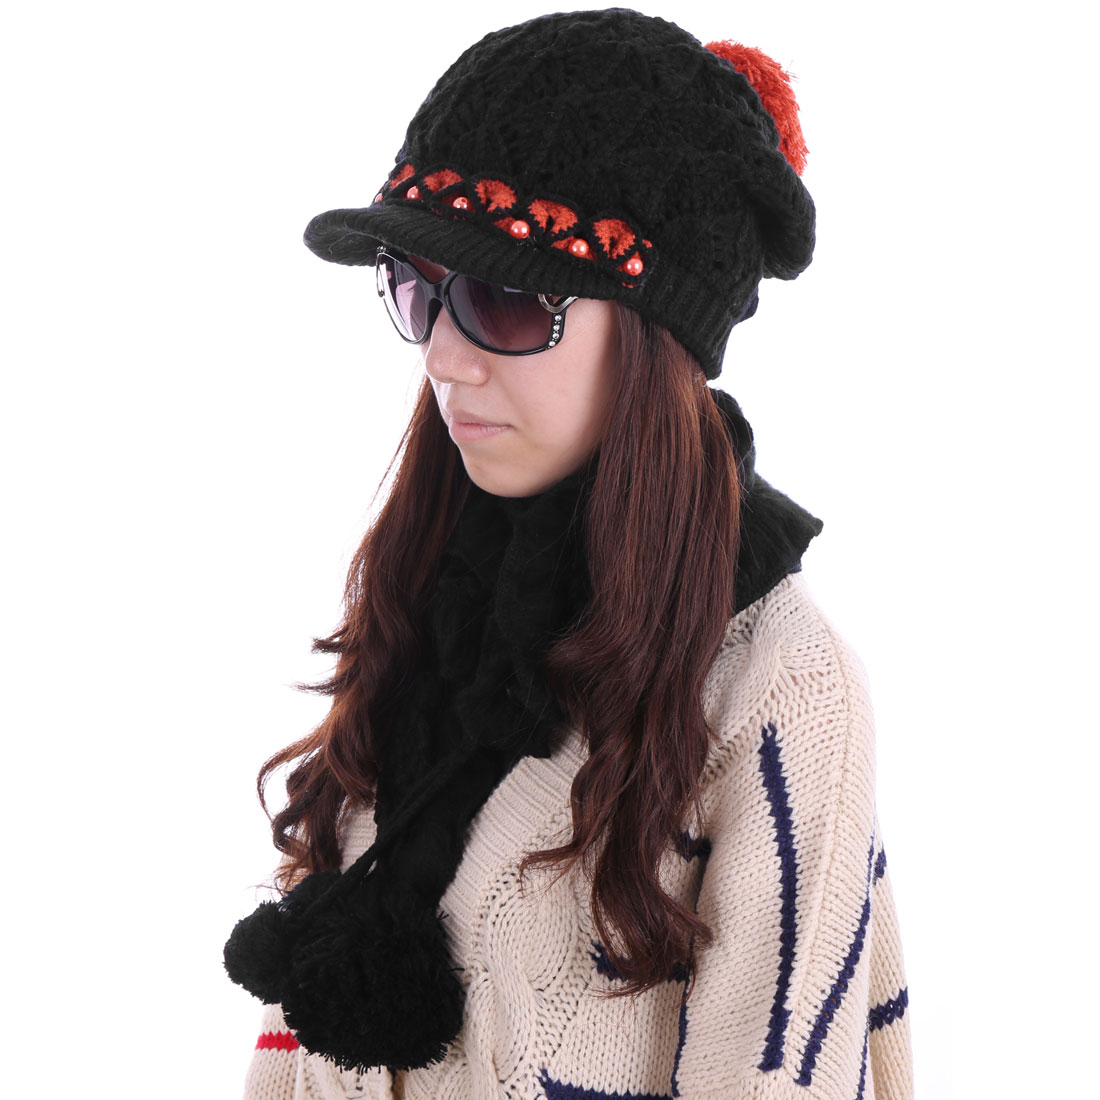 Women Beads Pom Pom Hat & Winter Wool Scarf Black